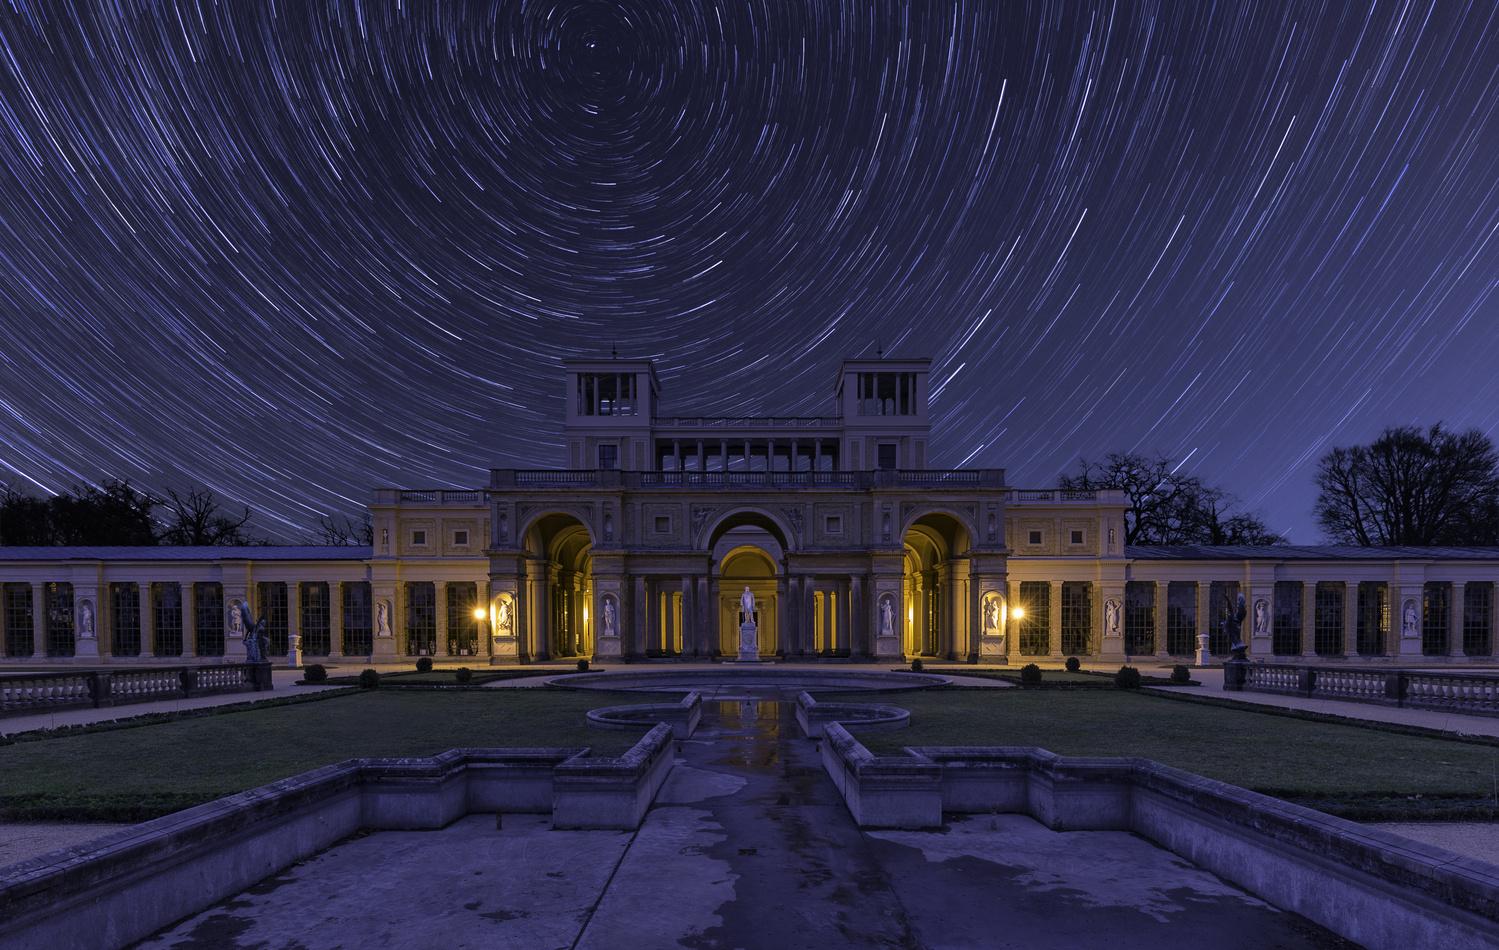 Star Trails at Orangery Palace - Potsdam by Christian Wenglorz